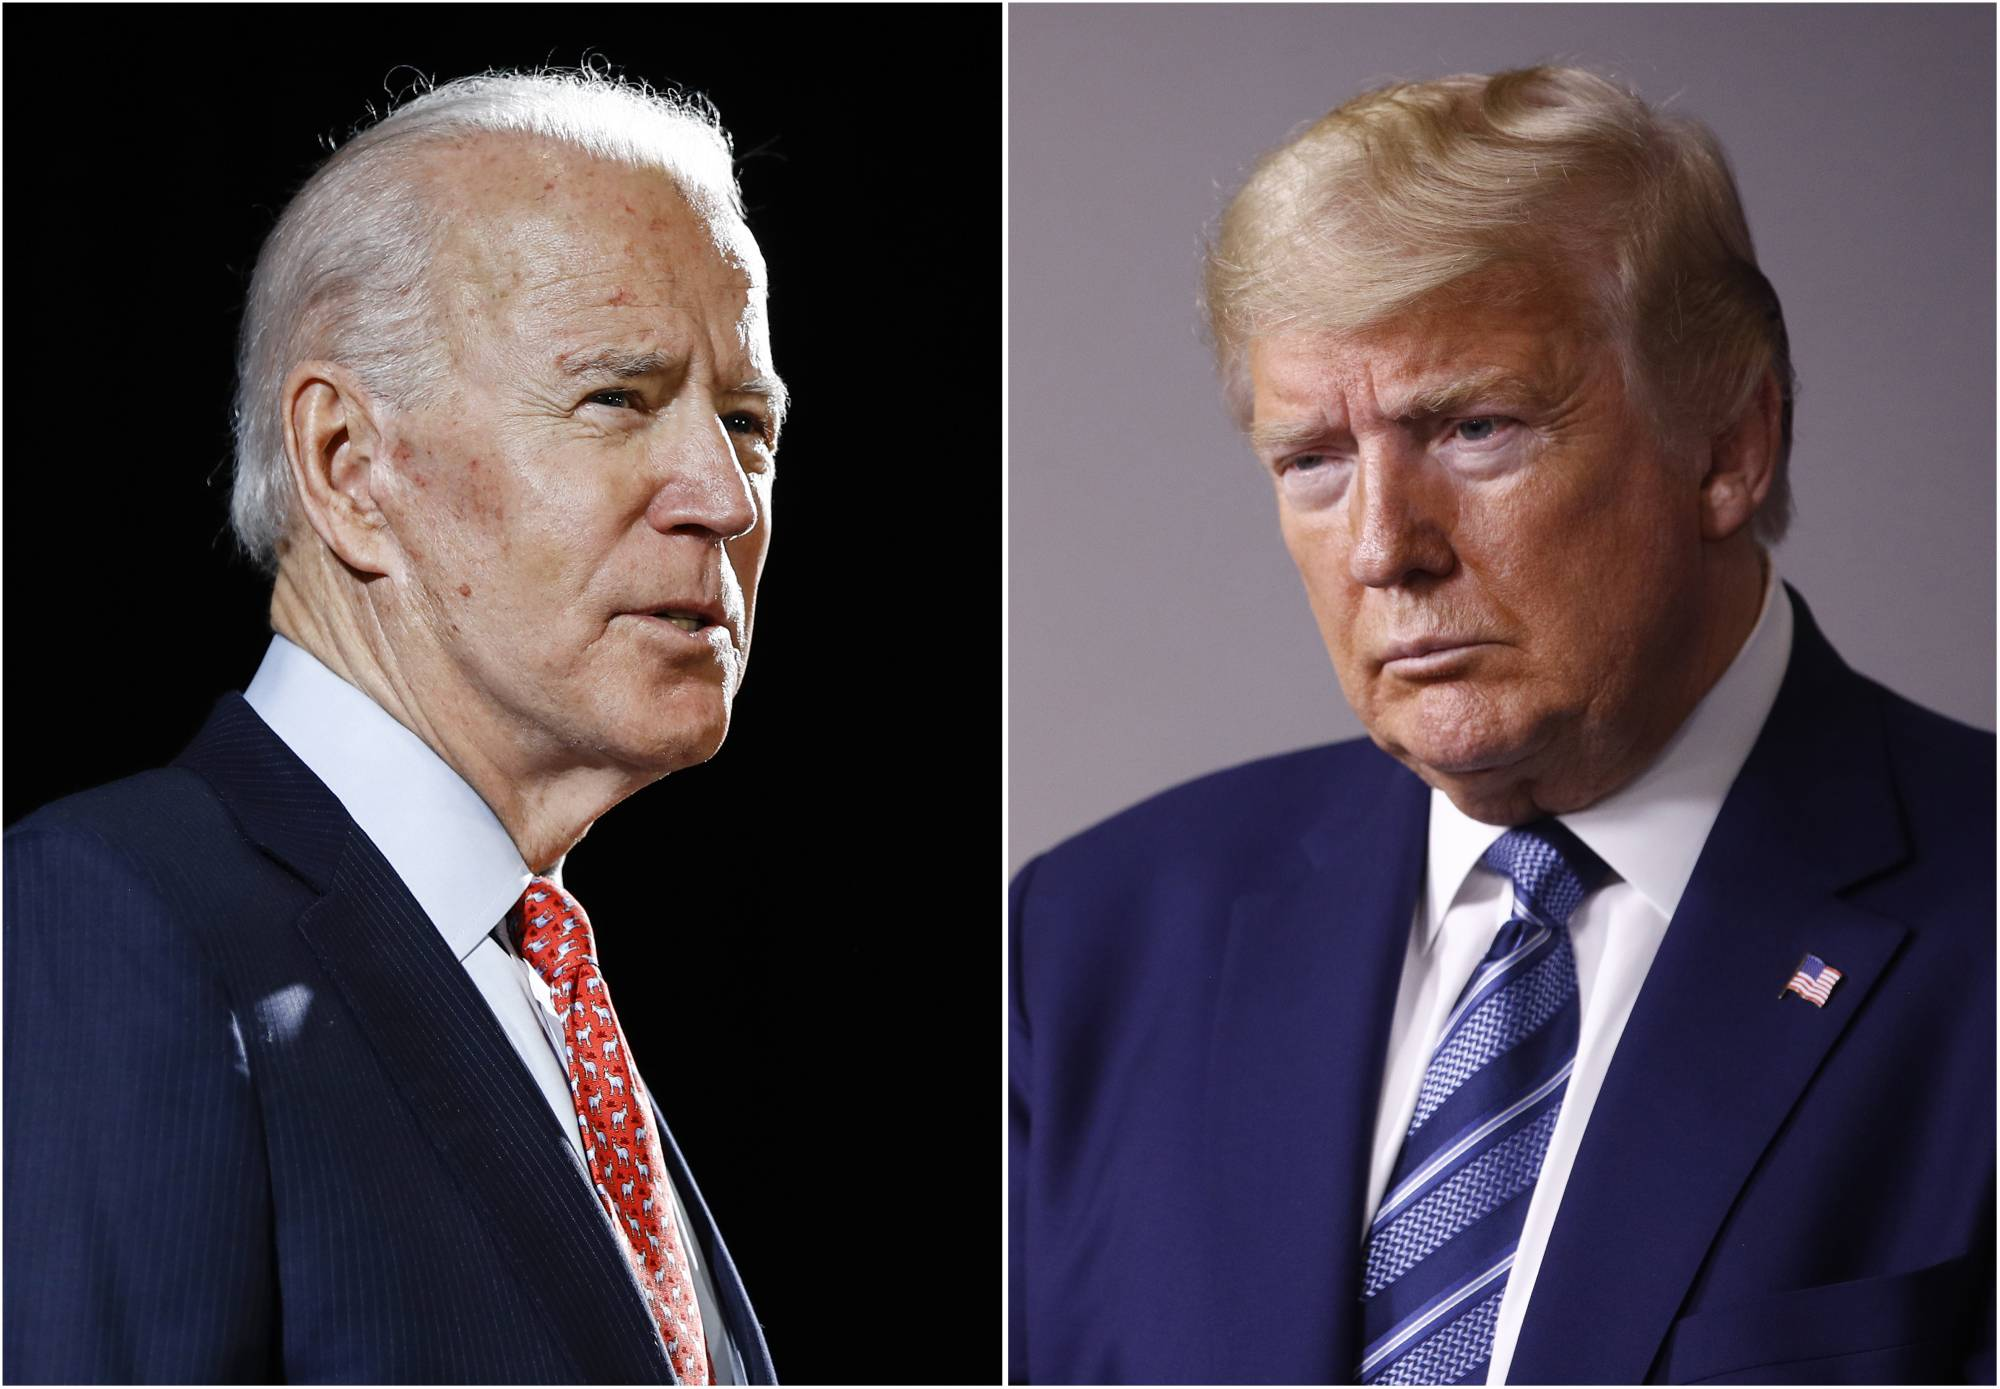 The Republican National Committee said on Monday that it and U.S. President Donald Trump's campaign jointly raised $61.7 million in April, just beating the month's haul for presumptive Democratic presidential nominee Joe Biden whose campaign, along with the Democratic National Committee, raised $60.5 million. | AP